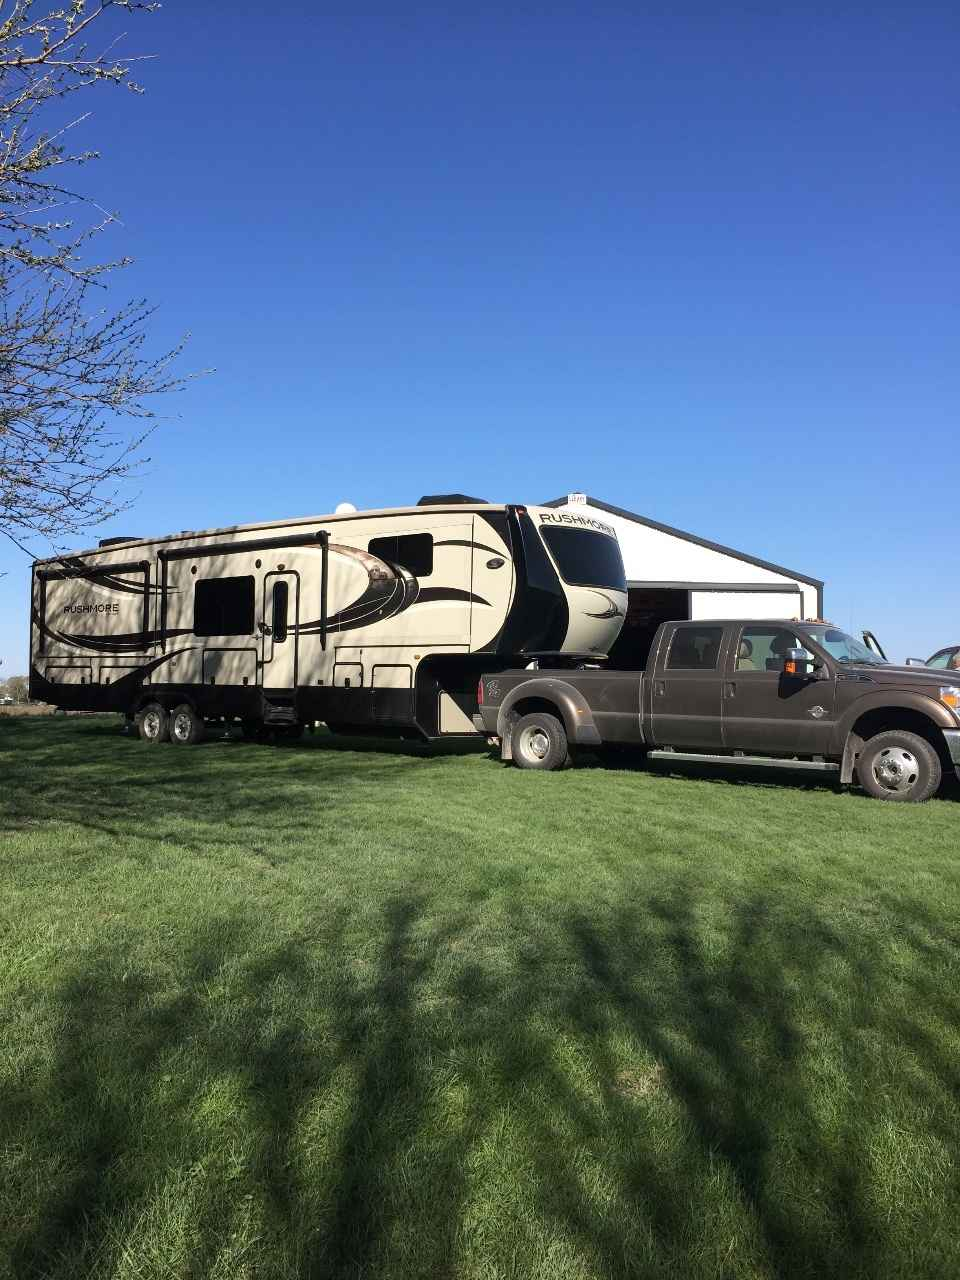 2013 Used Crossroads Rushmore F39ln Fifth Wheel In Iowa Ia. The Road Basement. Cost To Finish A Basement Room. Basement Septic Pump Systems. Basement Steps Cover. Basement Finishing Prices. Leaking Basement Walls. Cheap Basement Floor Ideas. There Is No Basement At The Alamo